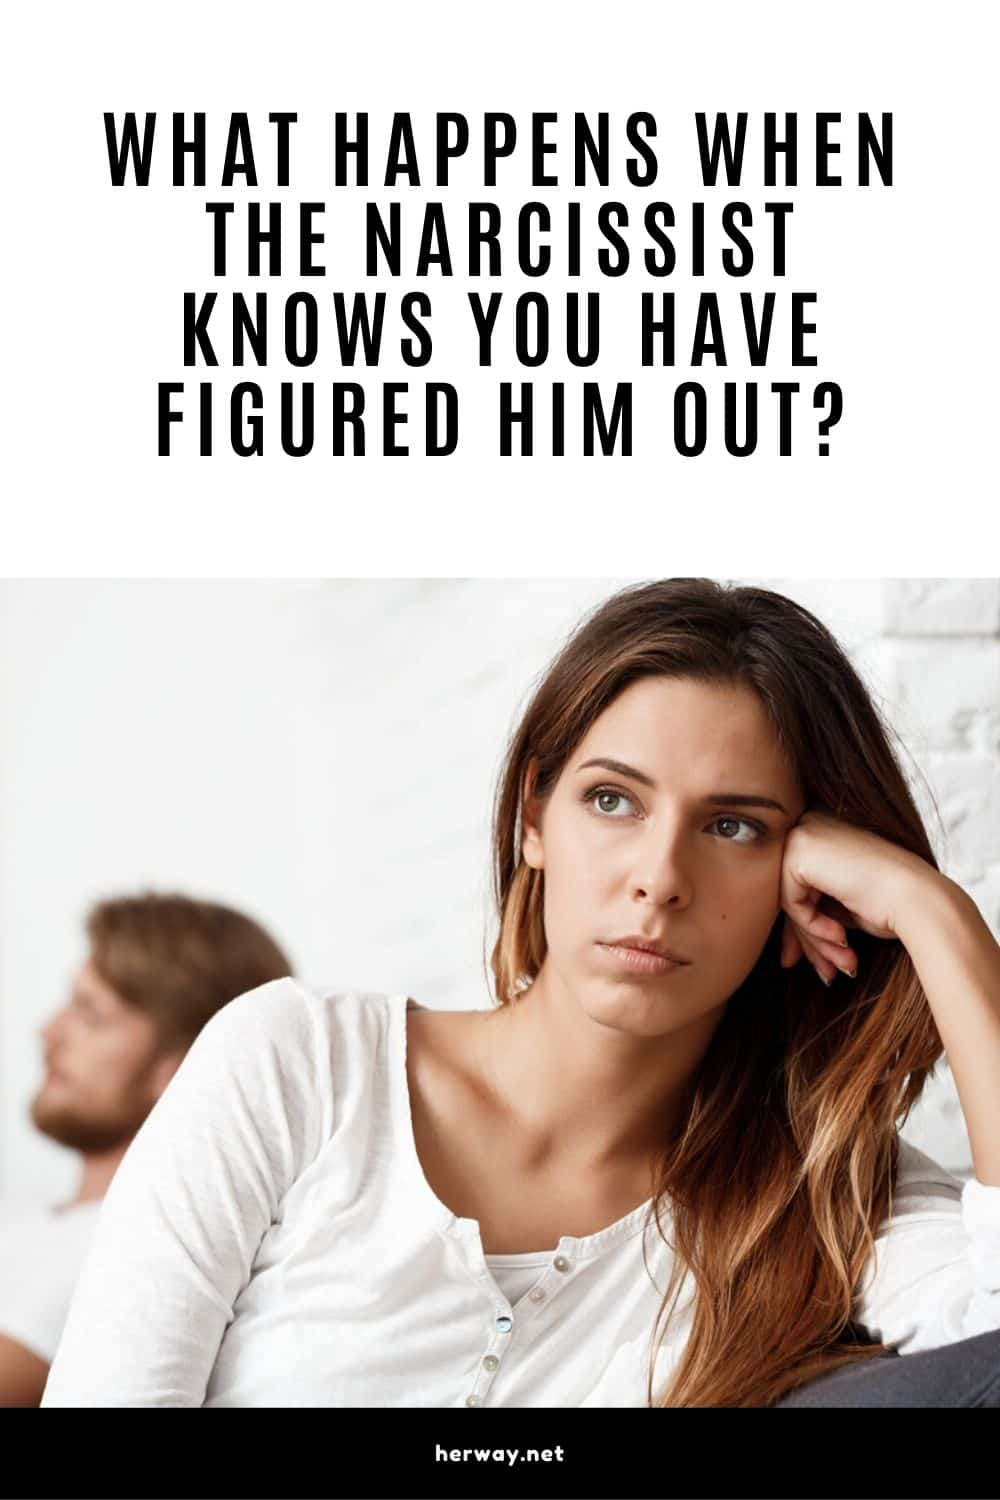 What Happens When The Narcissist Knows You Have Figured Him Out?